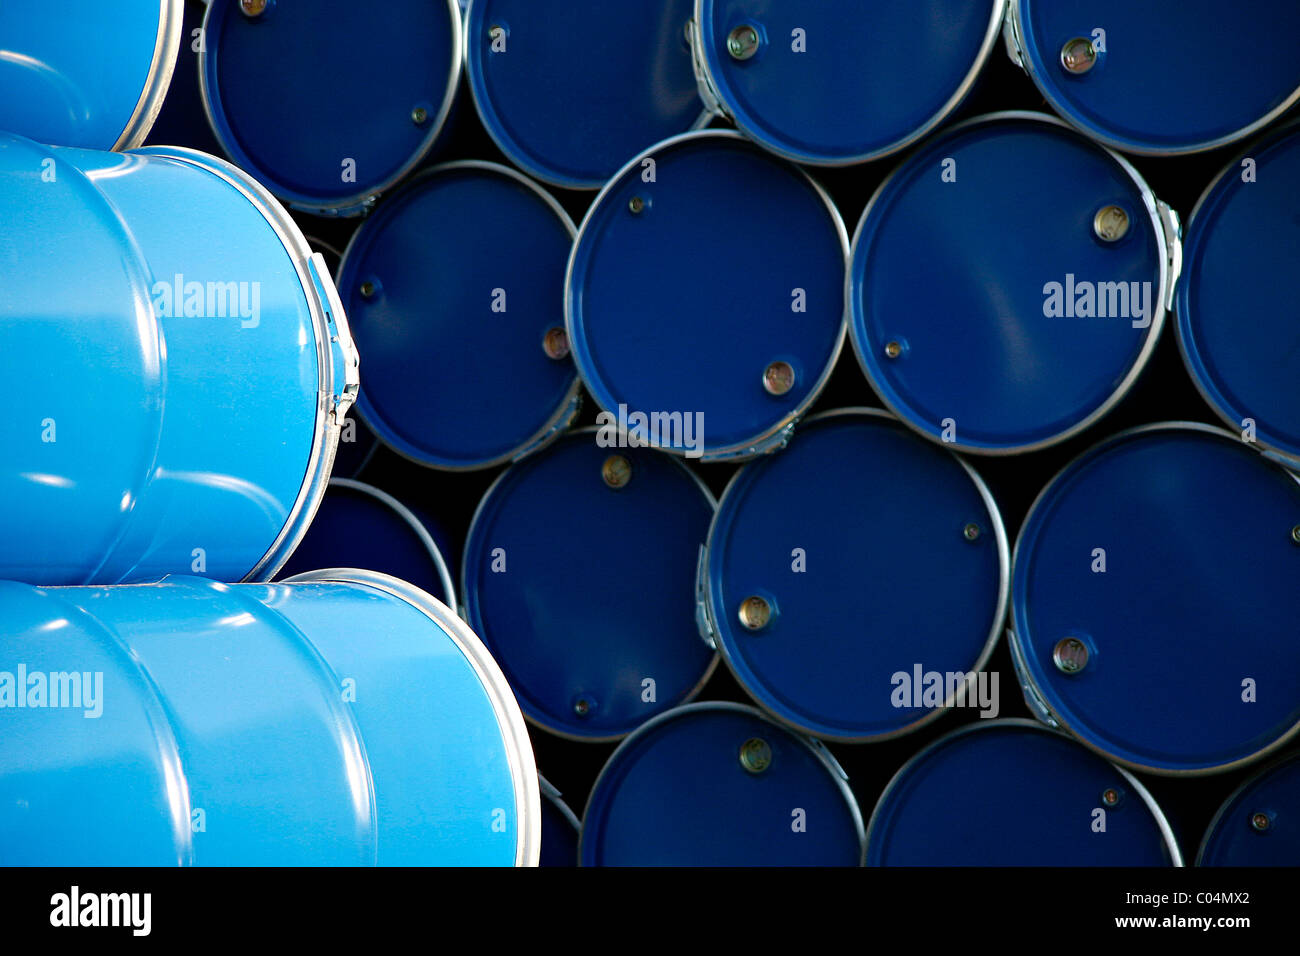 Blue barrels in the warehouse of a company - Stock Image